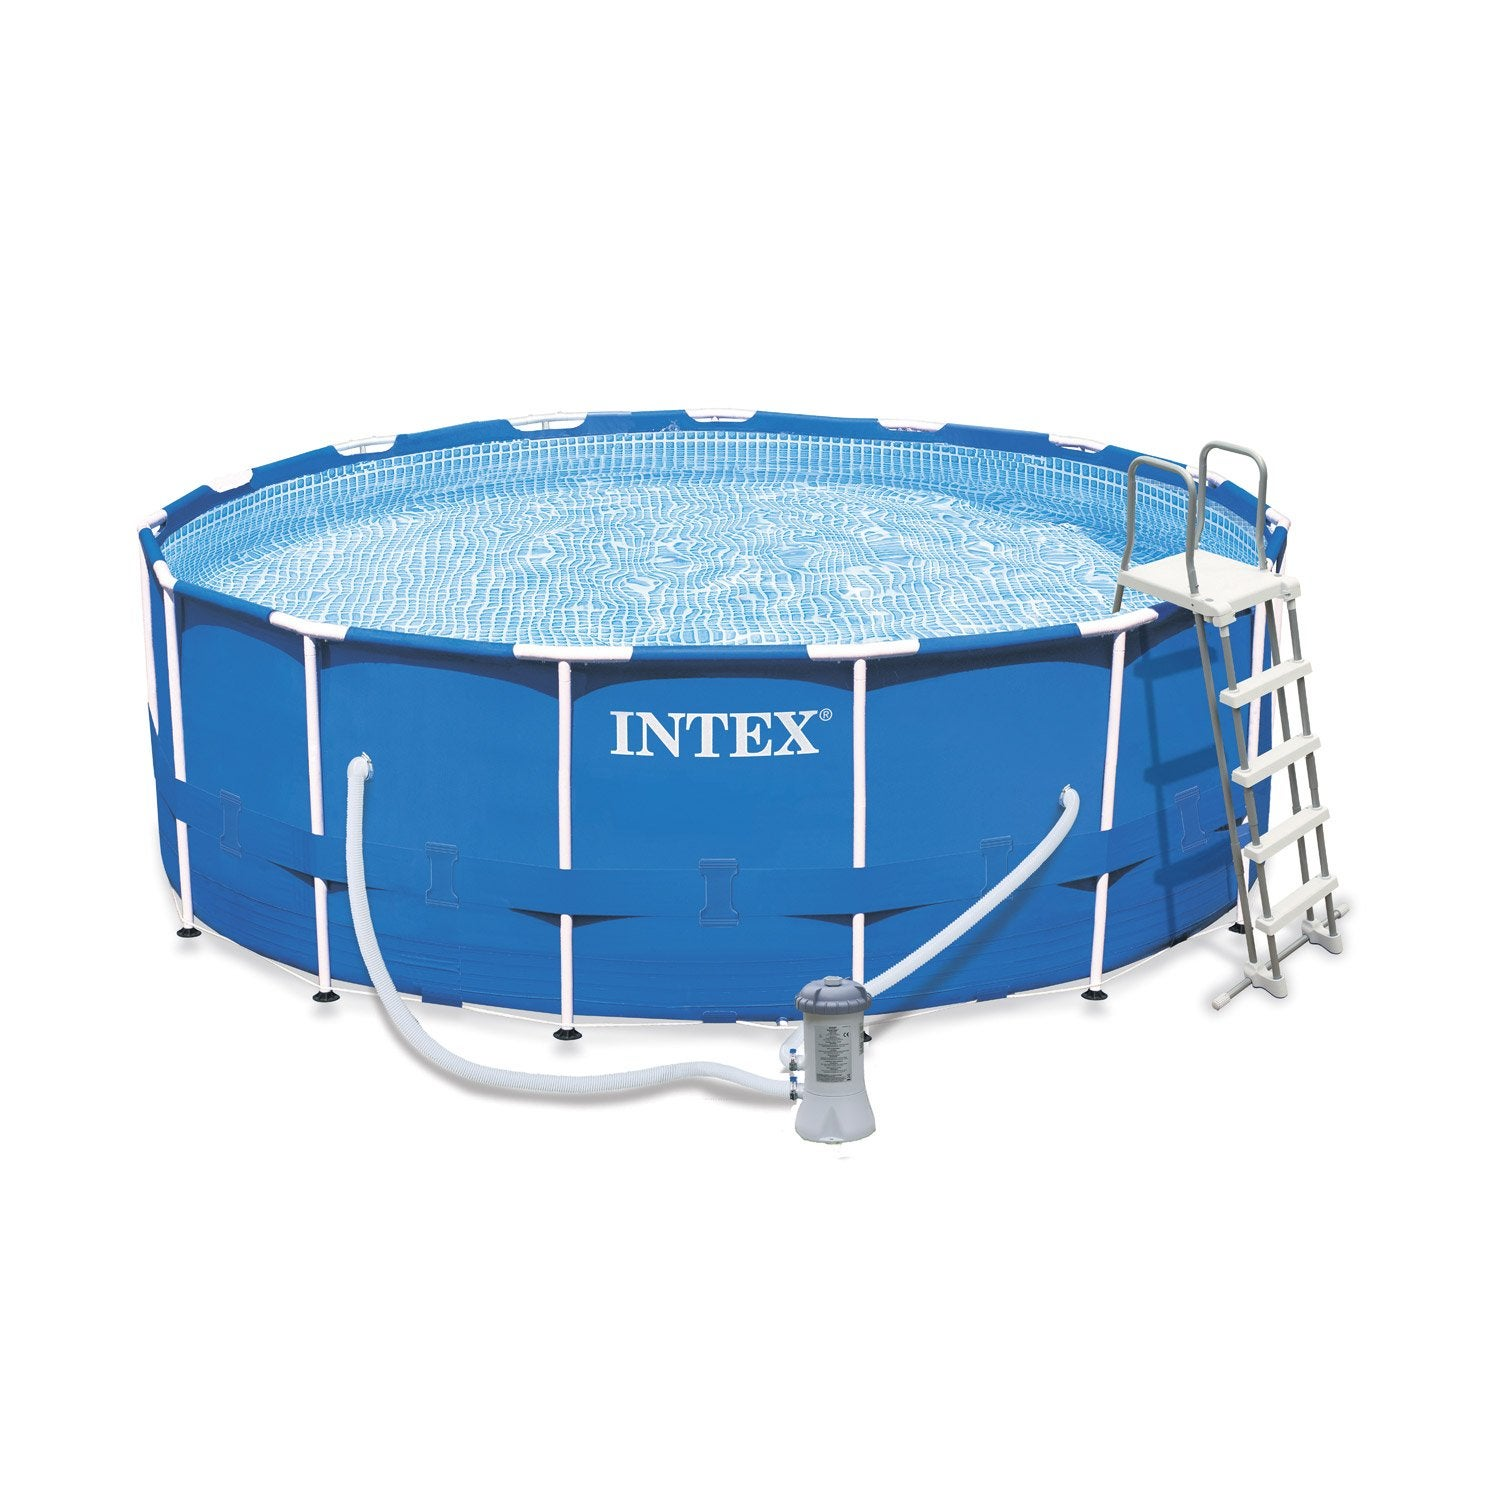 Piscine hors sol autoportante tubulaire metal frame intex for Robot pour piscine intex